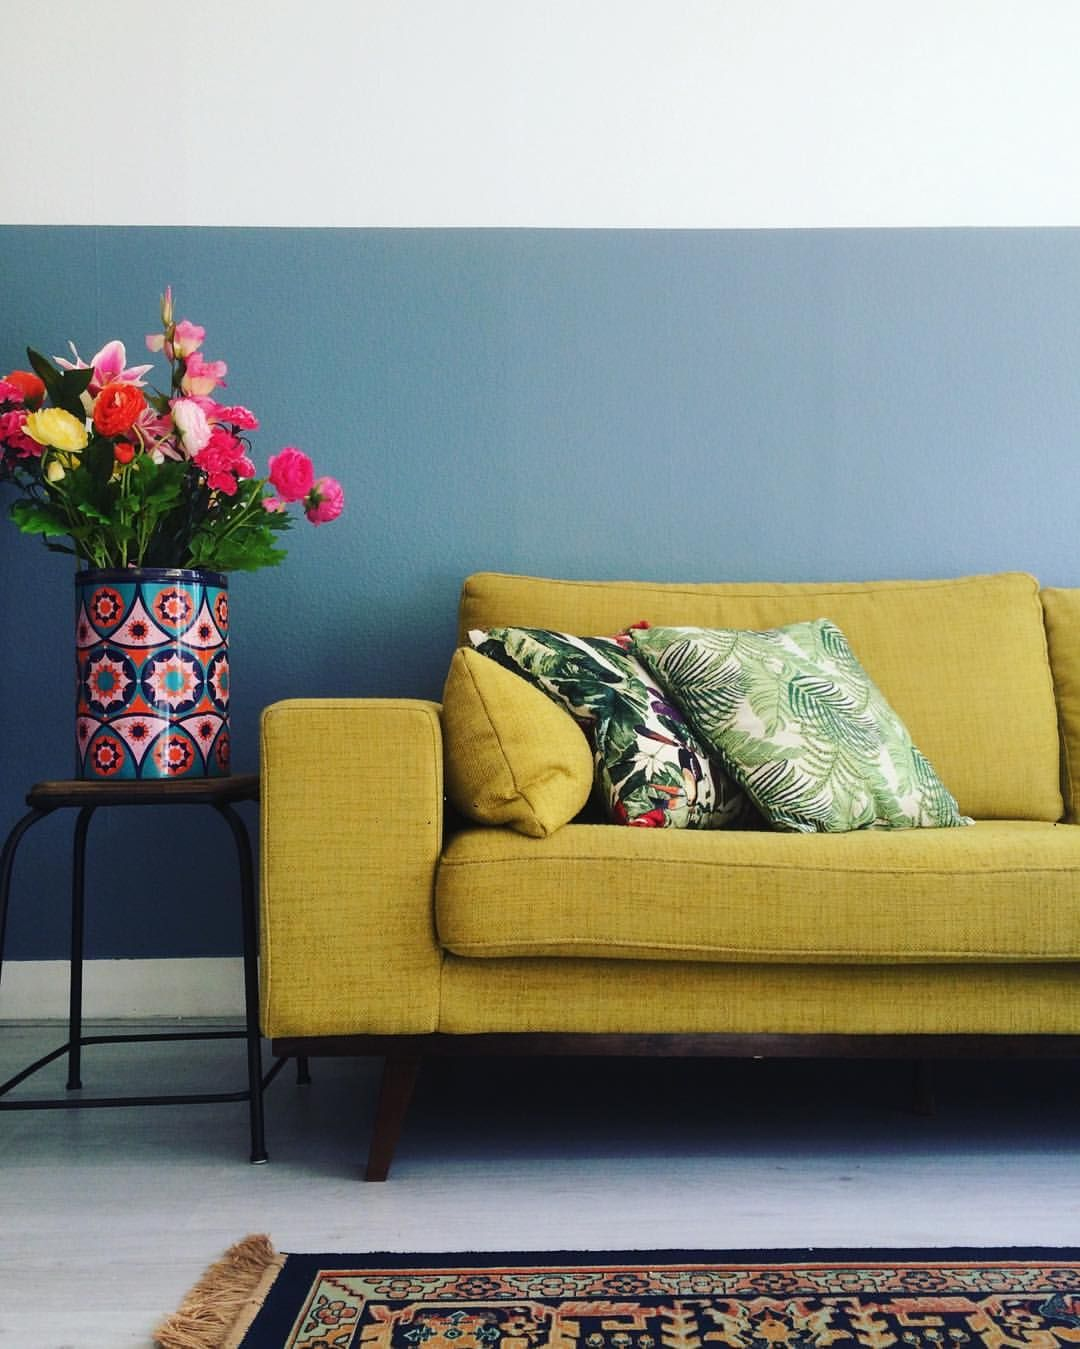 Half painted wall in Flexa denim drift, mustard yellow Torino couch ...